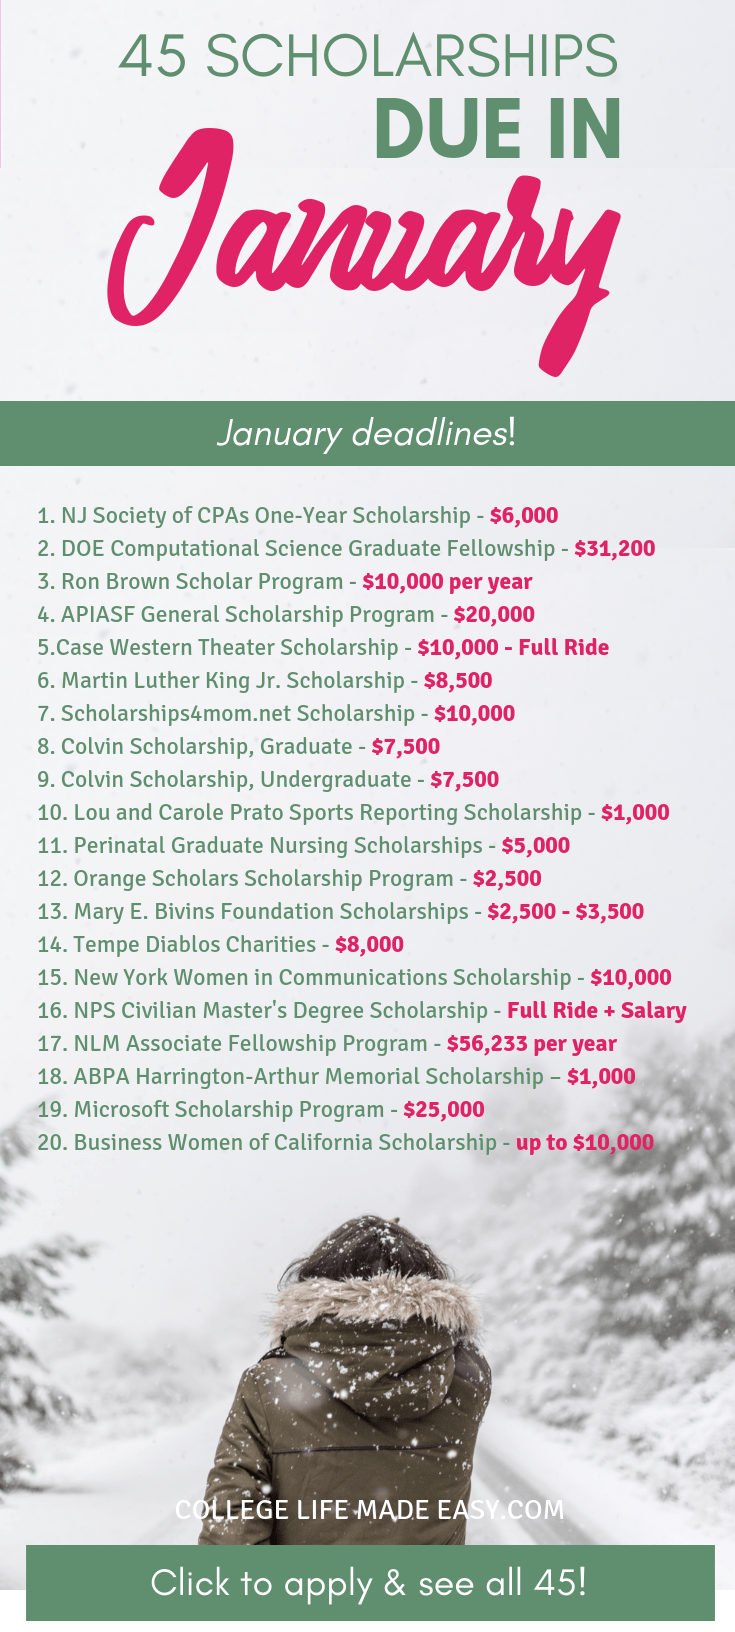 College scholarships that all have January deadlines in 2019! Click to apply and see all 45 scholarships! #scholarship #scholarships #2019 #college #student #collegelife